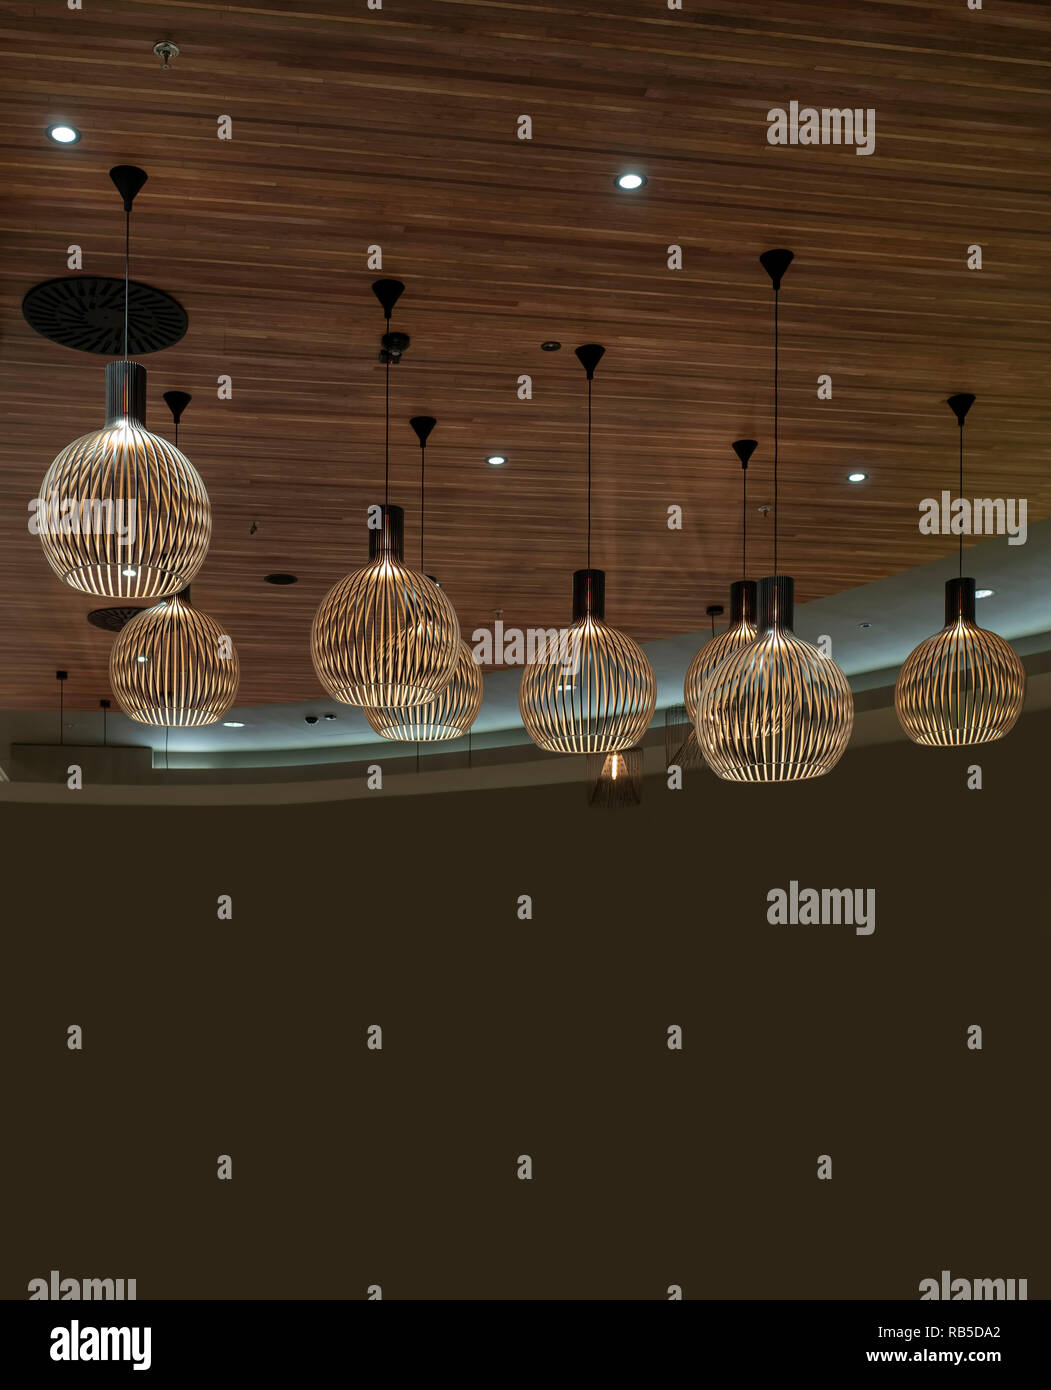 interior modern light decoration brown tones and wooden theme - Stock Image